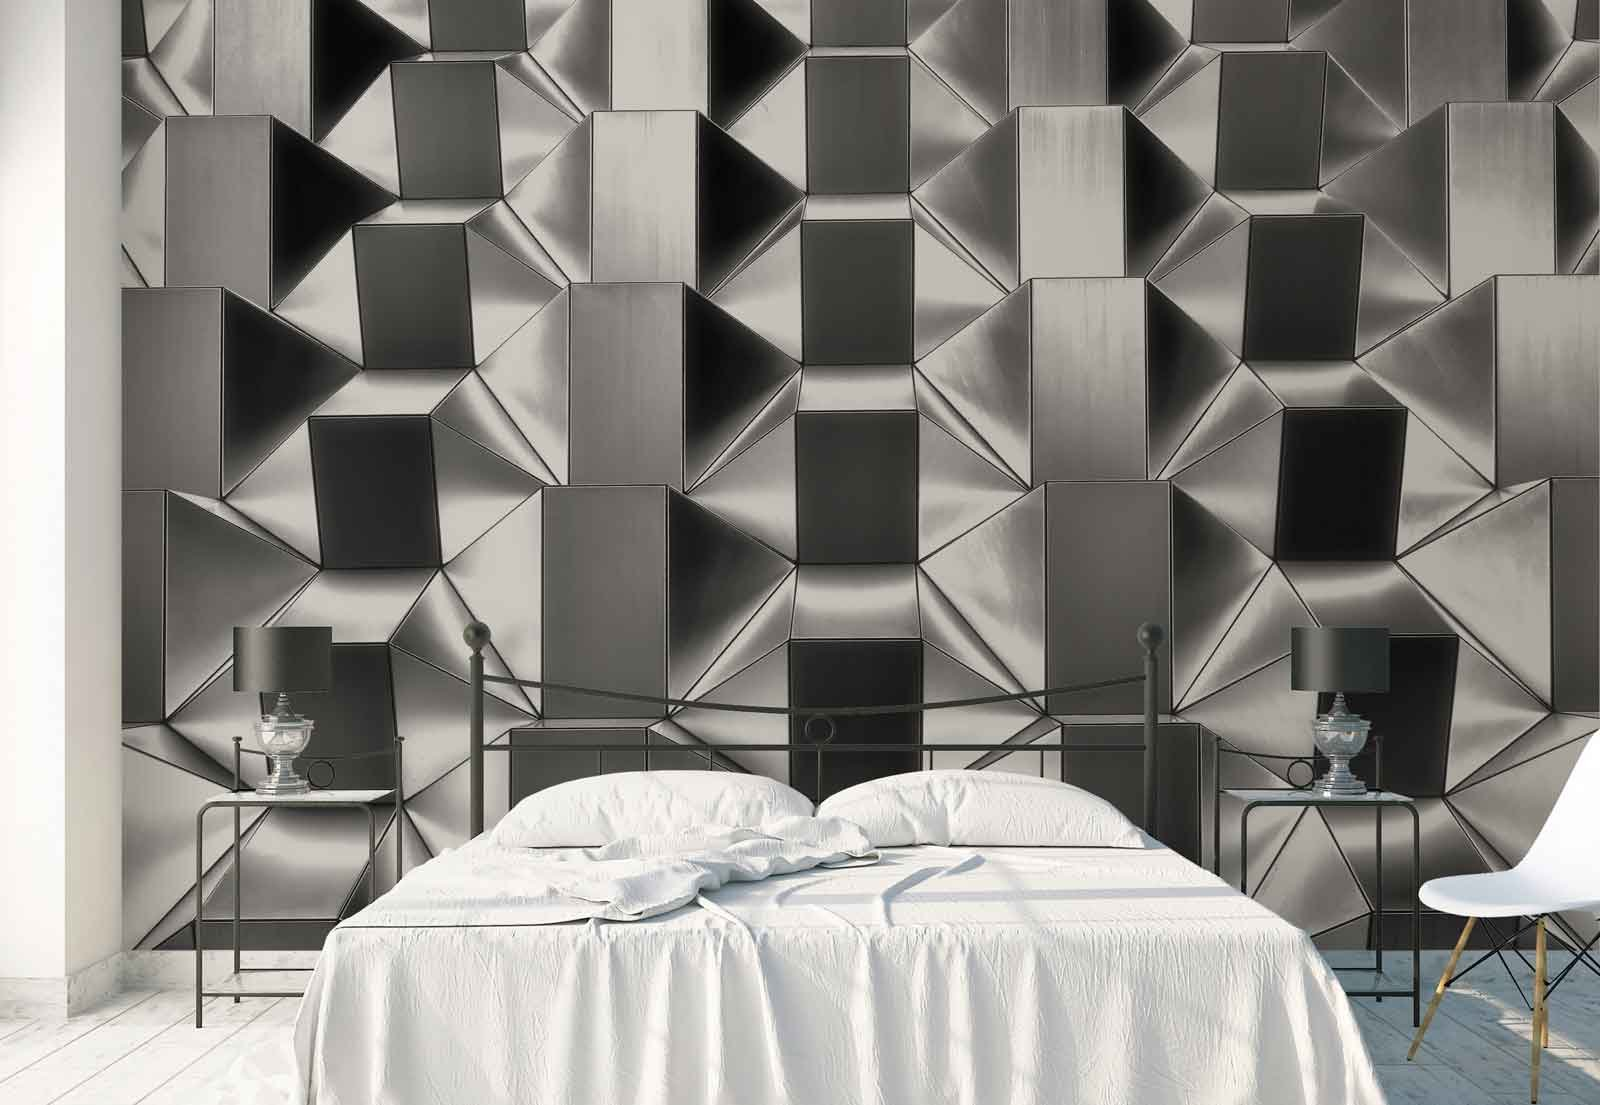 Photo wallpaper wall mural - Steel Tiles Geometrical Shapes Rows - Theme Architecture - XL - 12ft x 8ft 4in (WxH) - 4 Pieces - Printed on 130gsm Non-Woven Paper - 1X-1330067V8